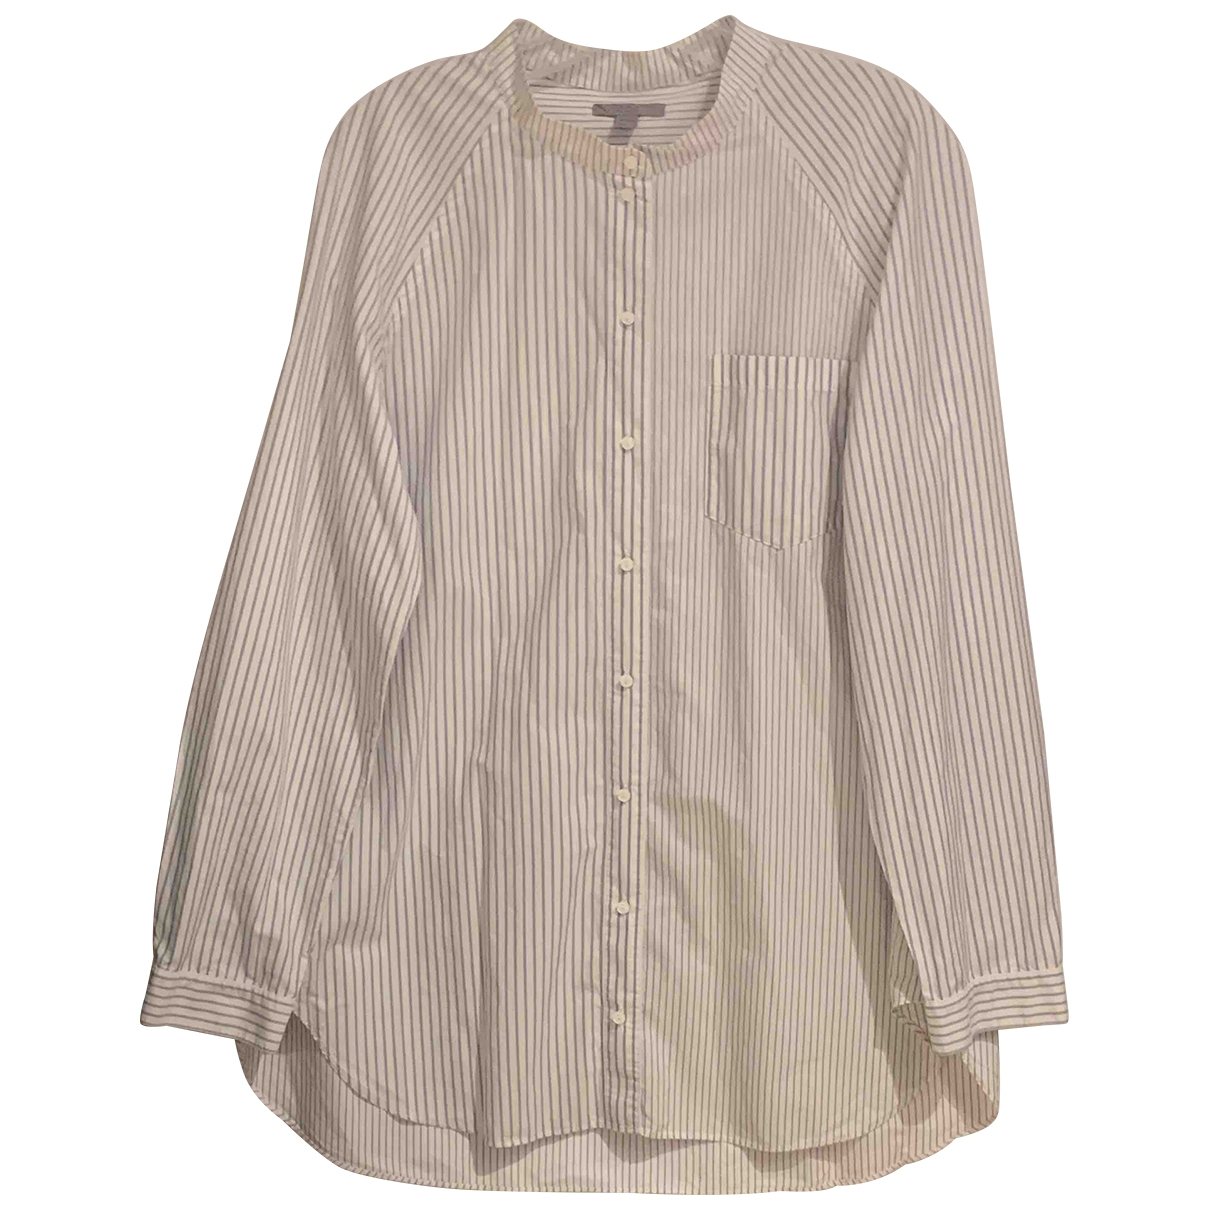 Cos \N White Cotton  top for Women 42 FR